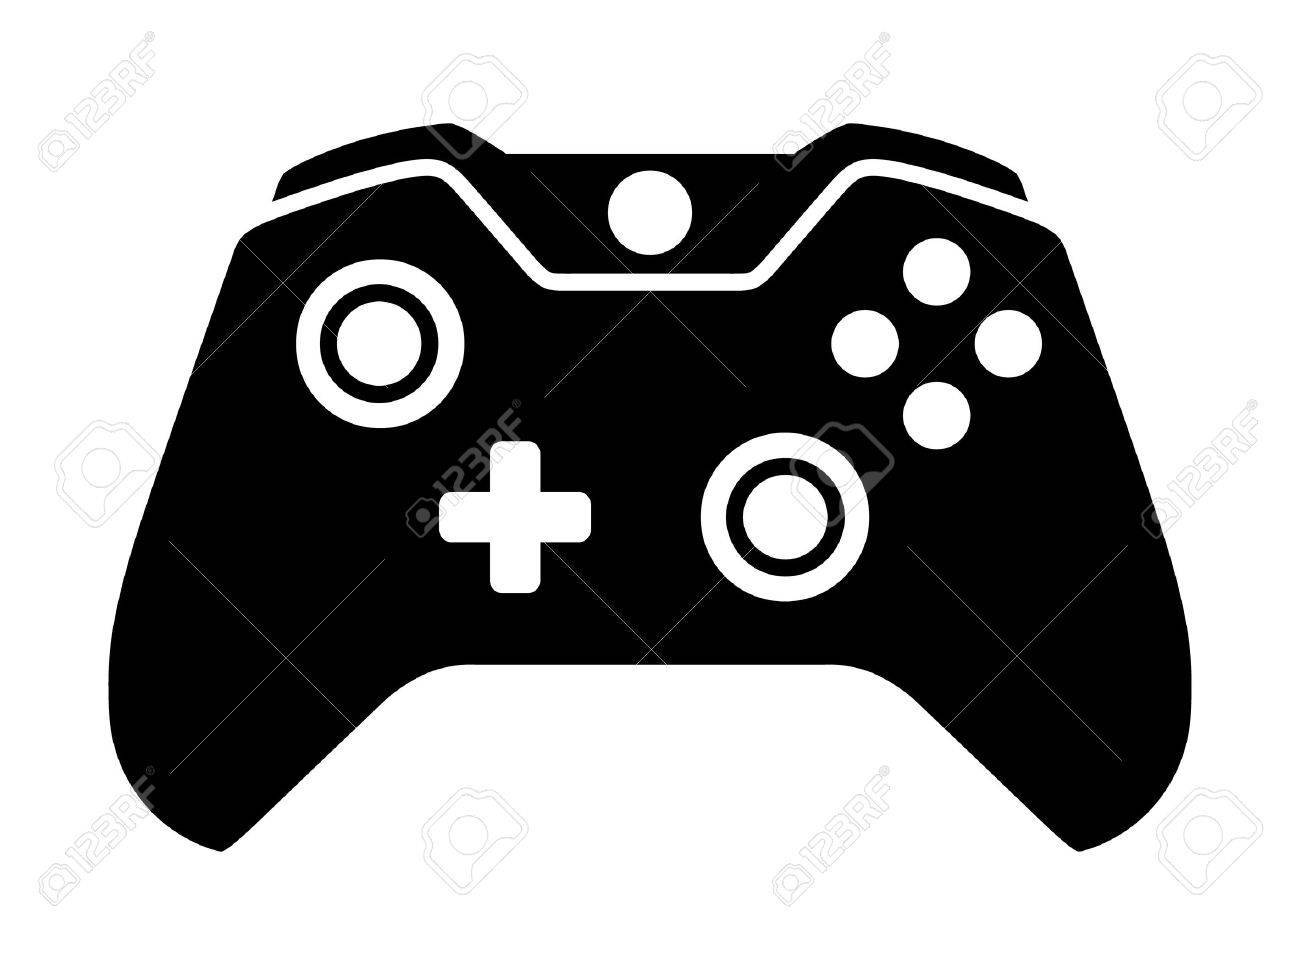 Video game controller clipart black and white 2 » Clipart Portal.